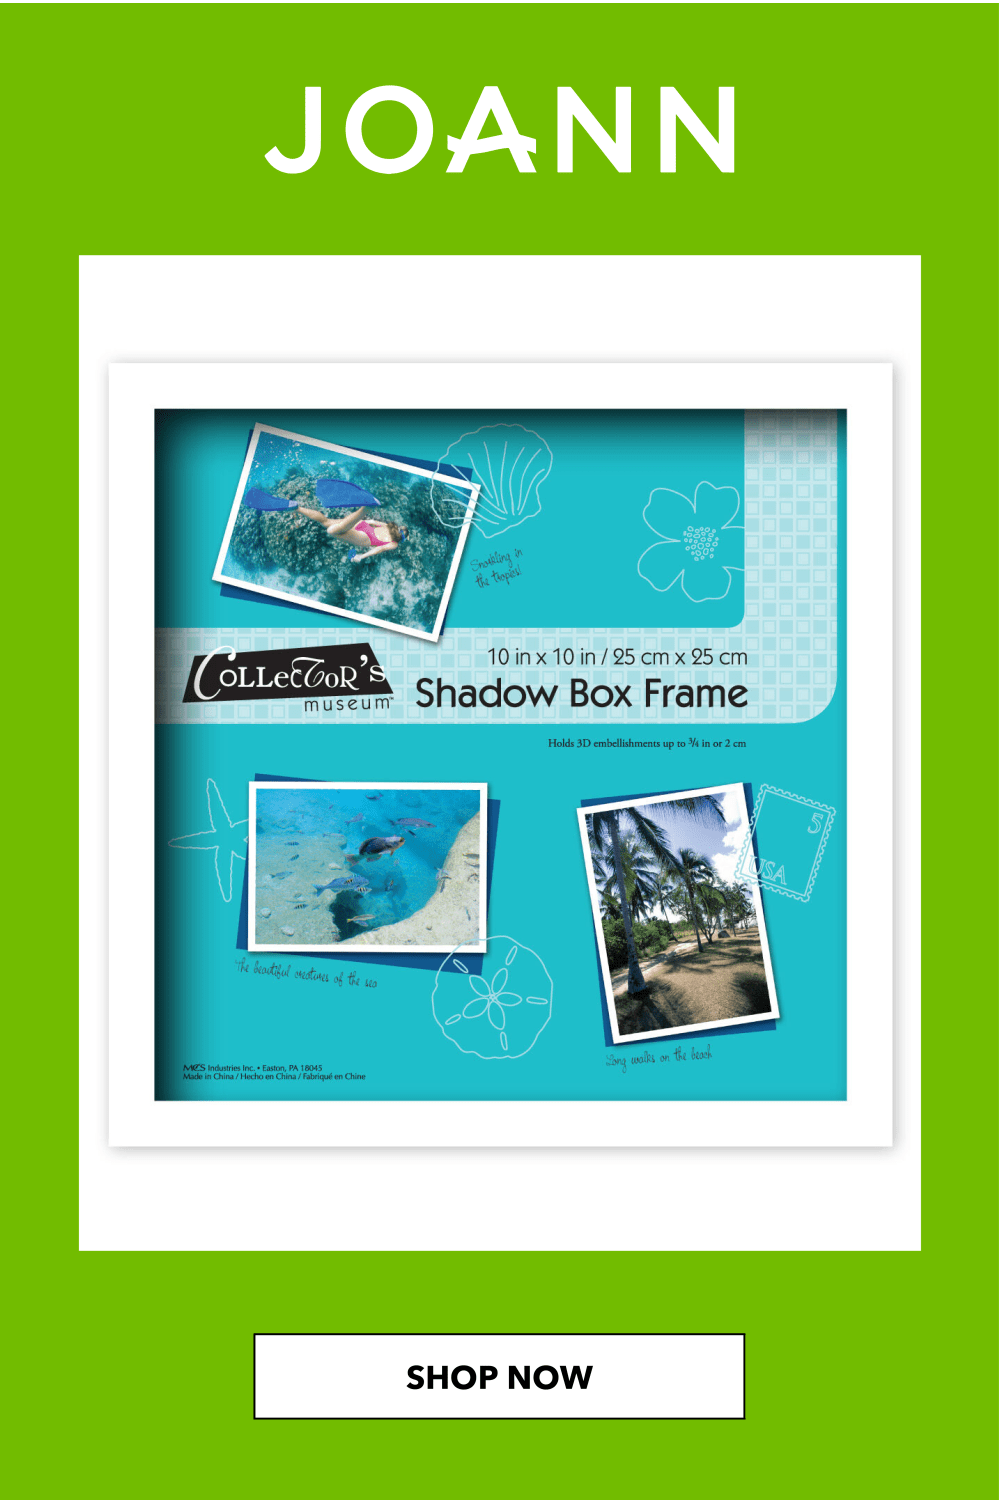 Mcs Industries Collector S Museum Shadow Box Frame 10 X10 White 10x10 Box Collectors Frame Industries Mcs Muse In 2020 Shadow Box Frames Box Frames Shadow Box